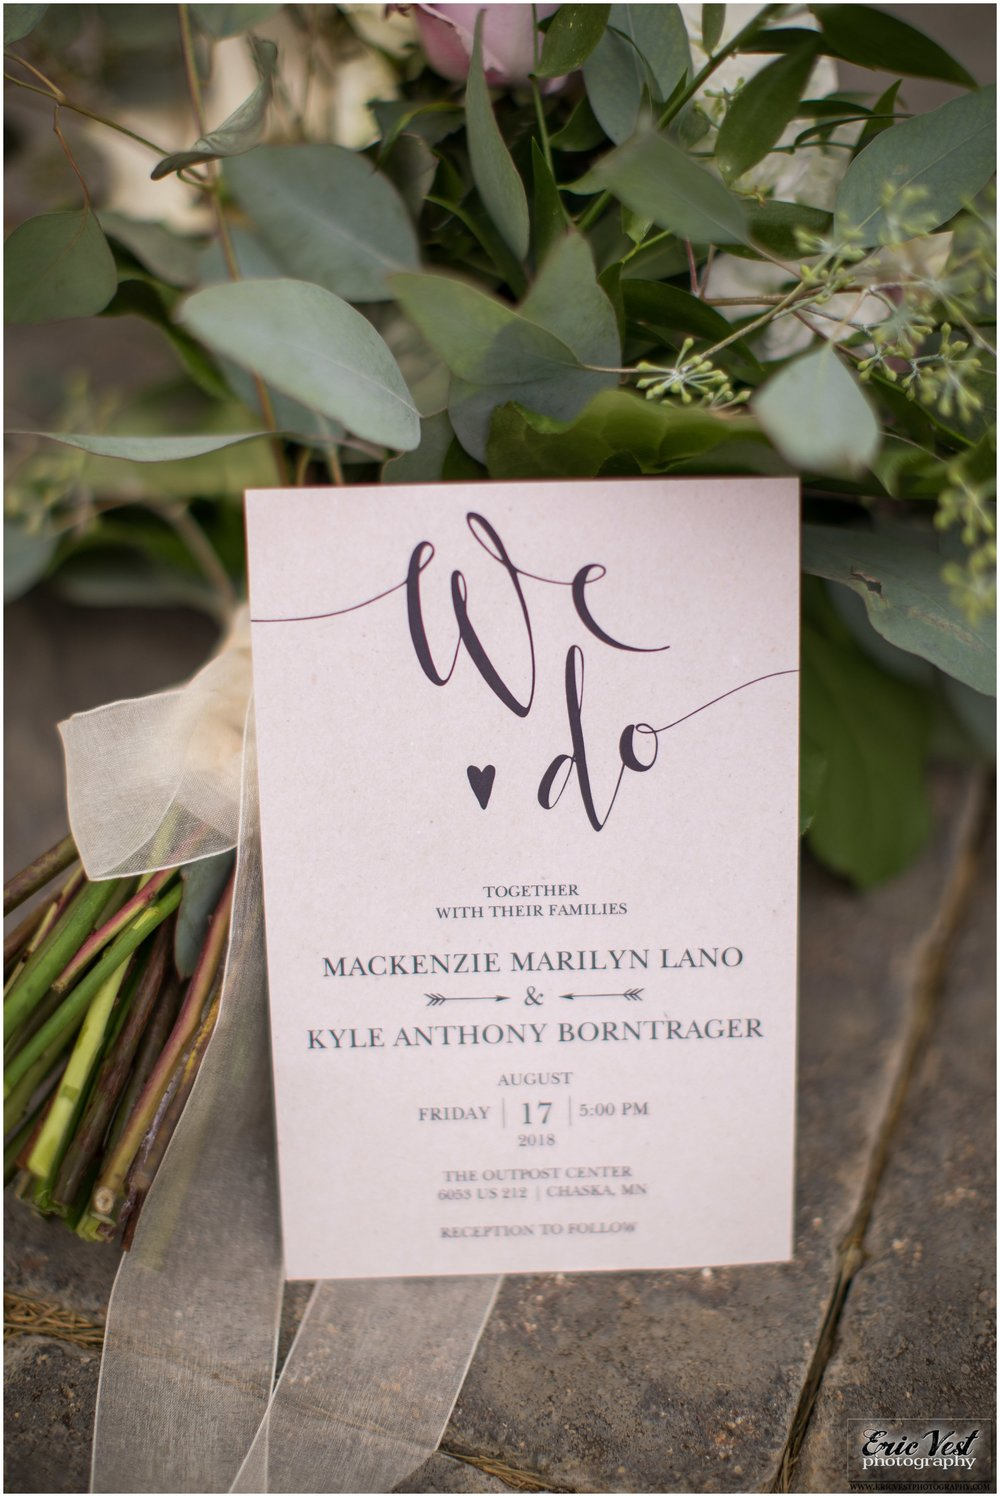 MN wedding invitations